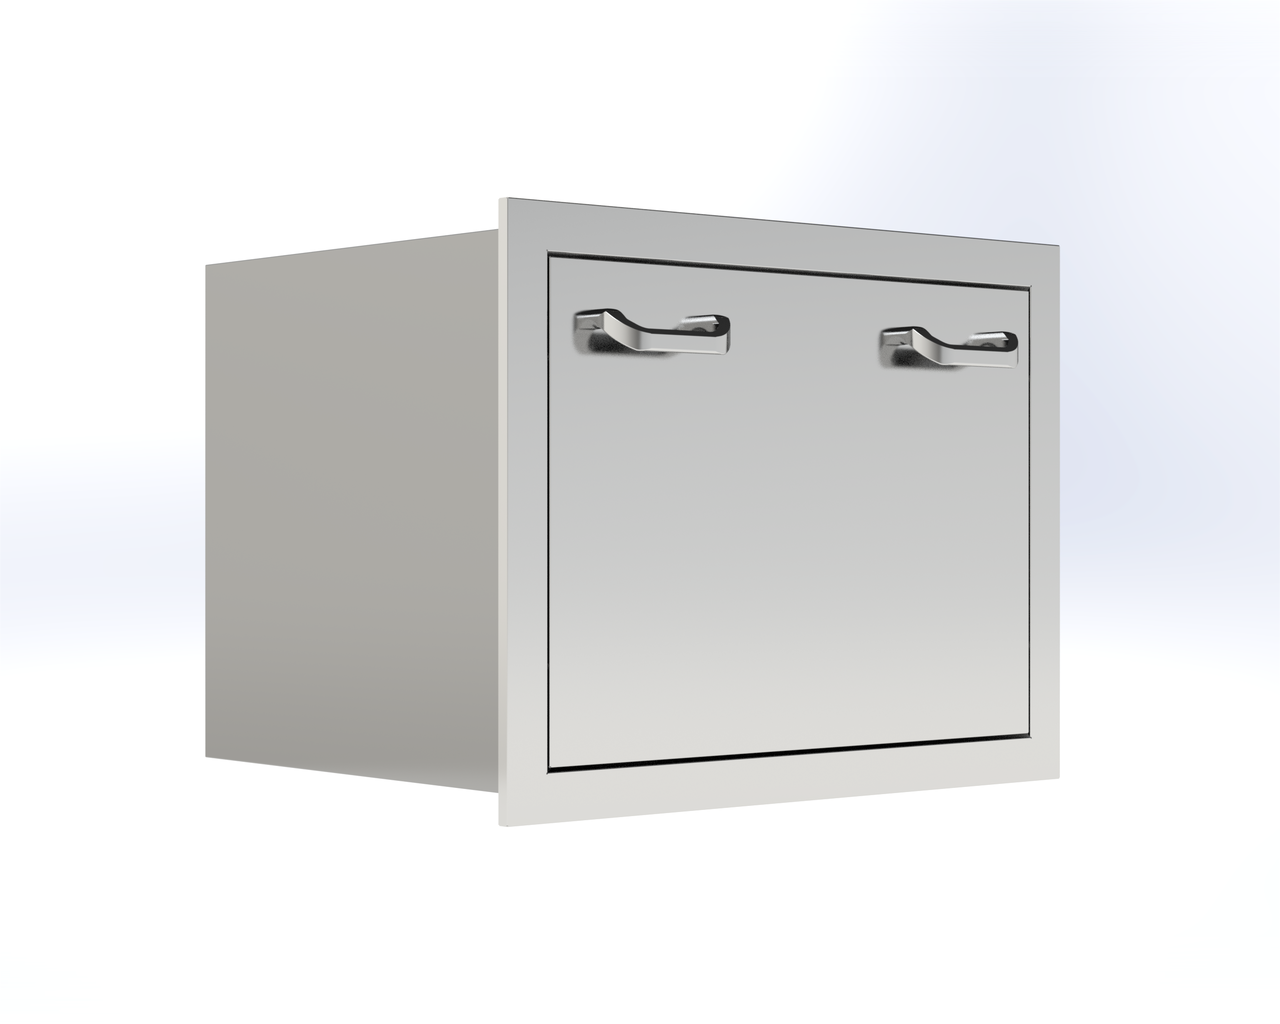 PCM Made in the USA Insulated Ice Drawer - 260-FID